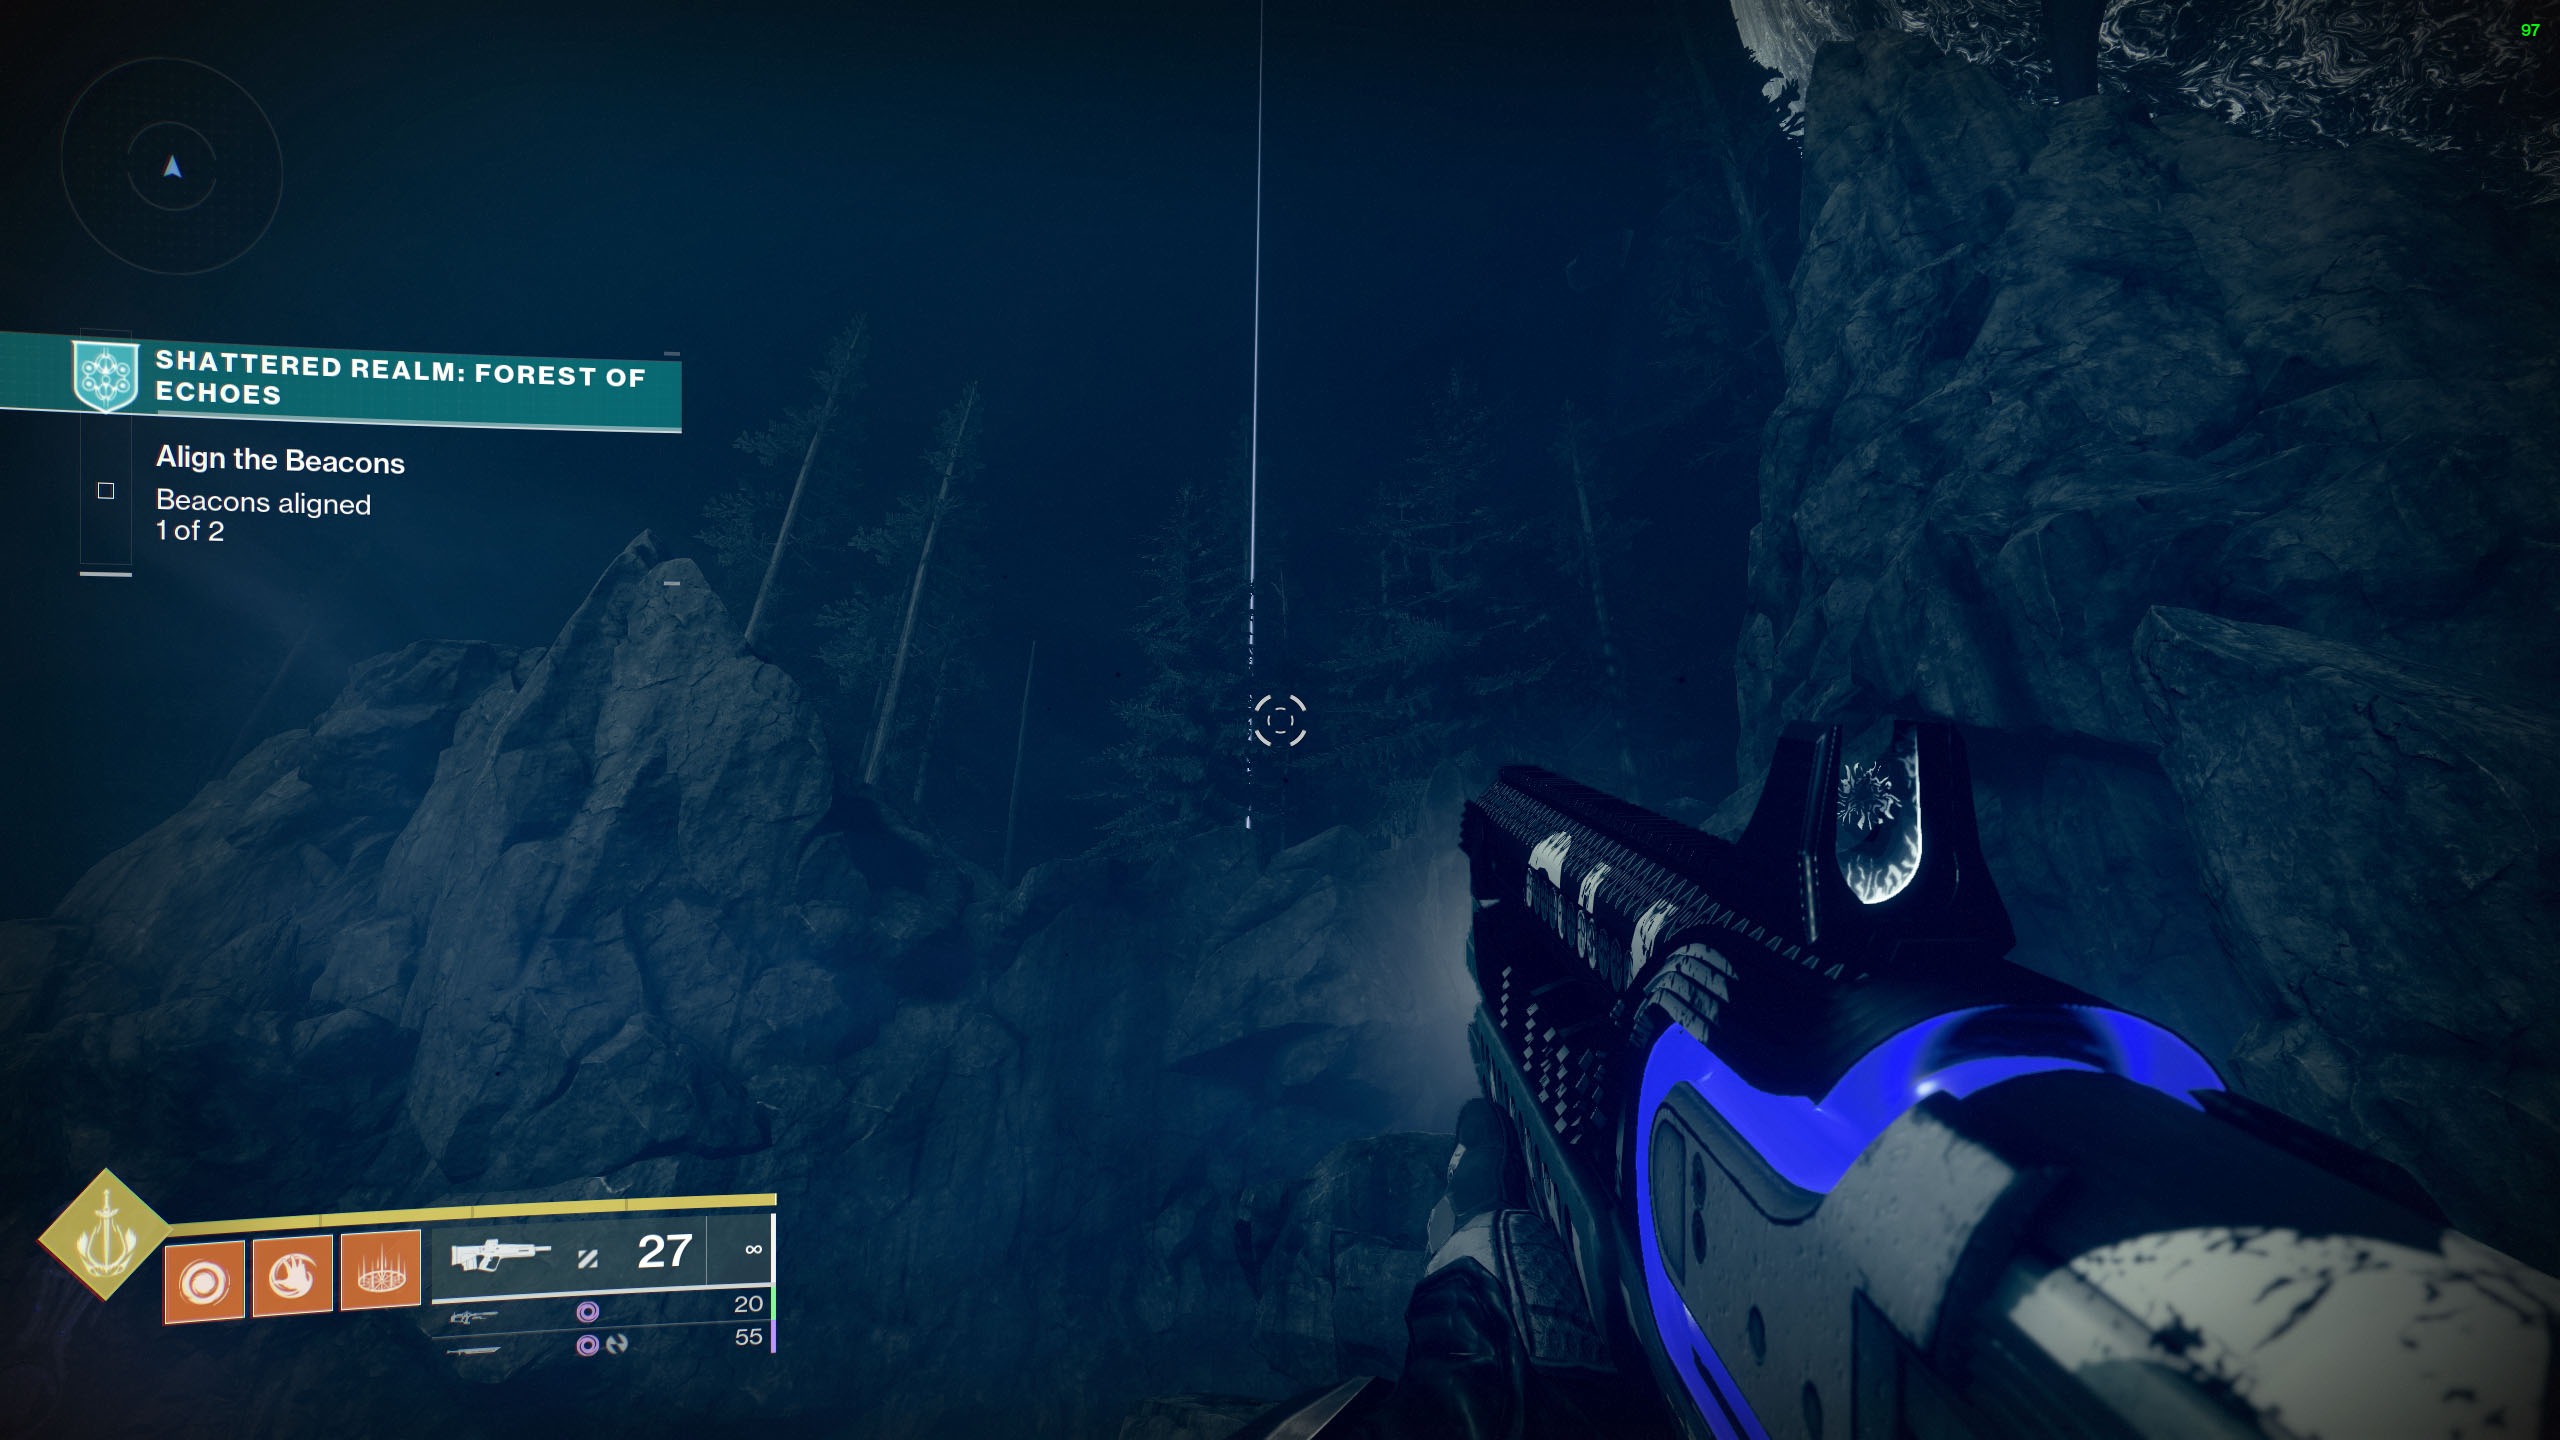 destiny 2 season of the lost campaign shattered realm beacons